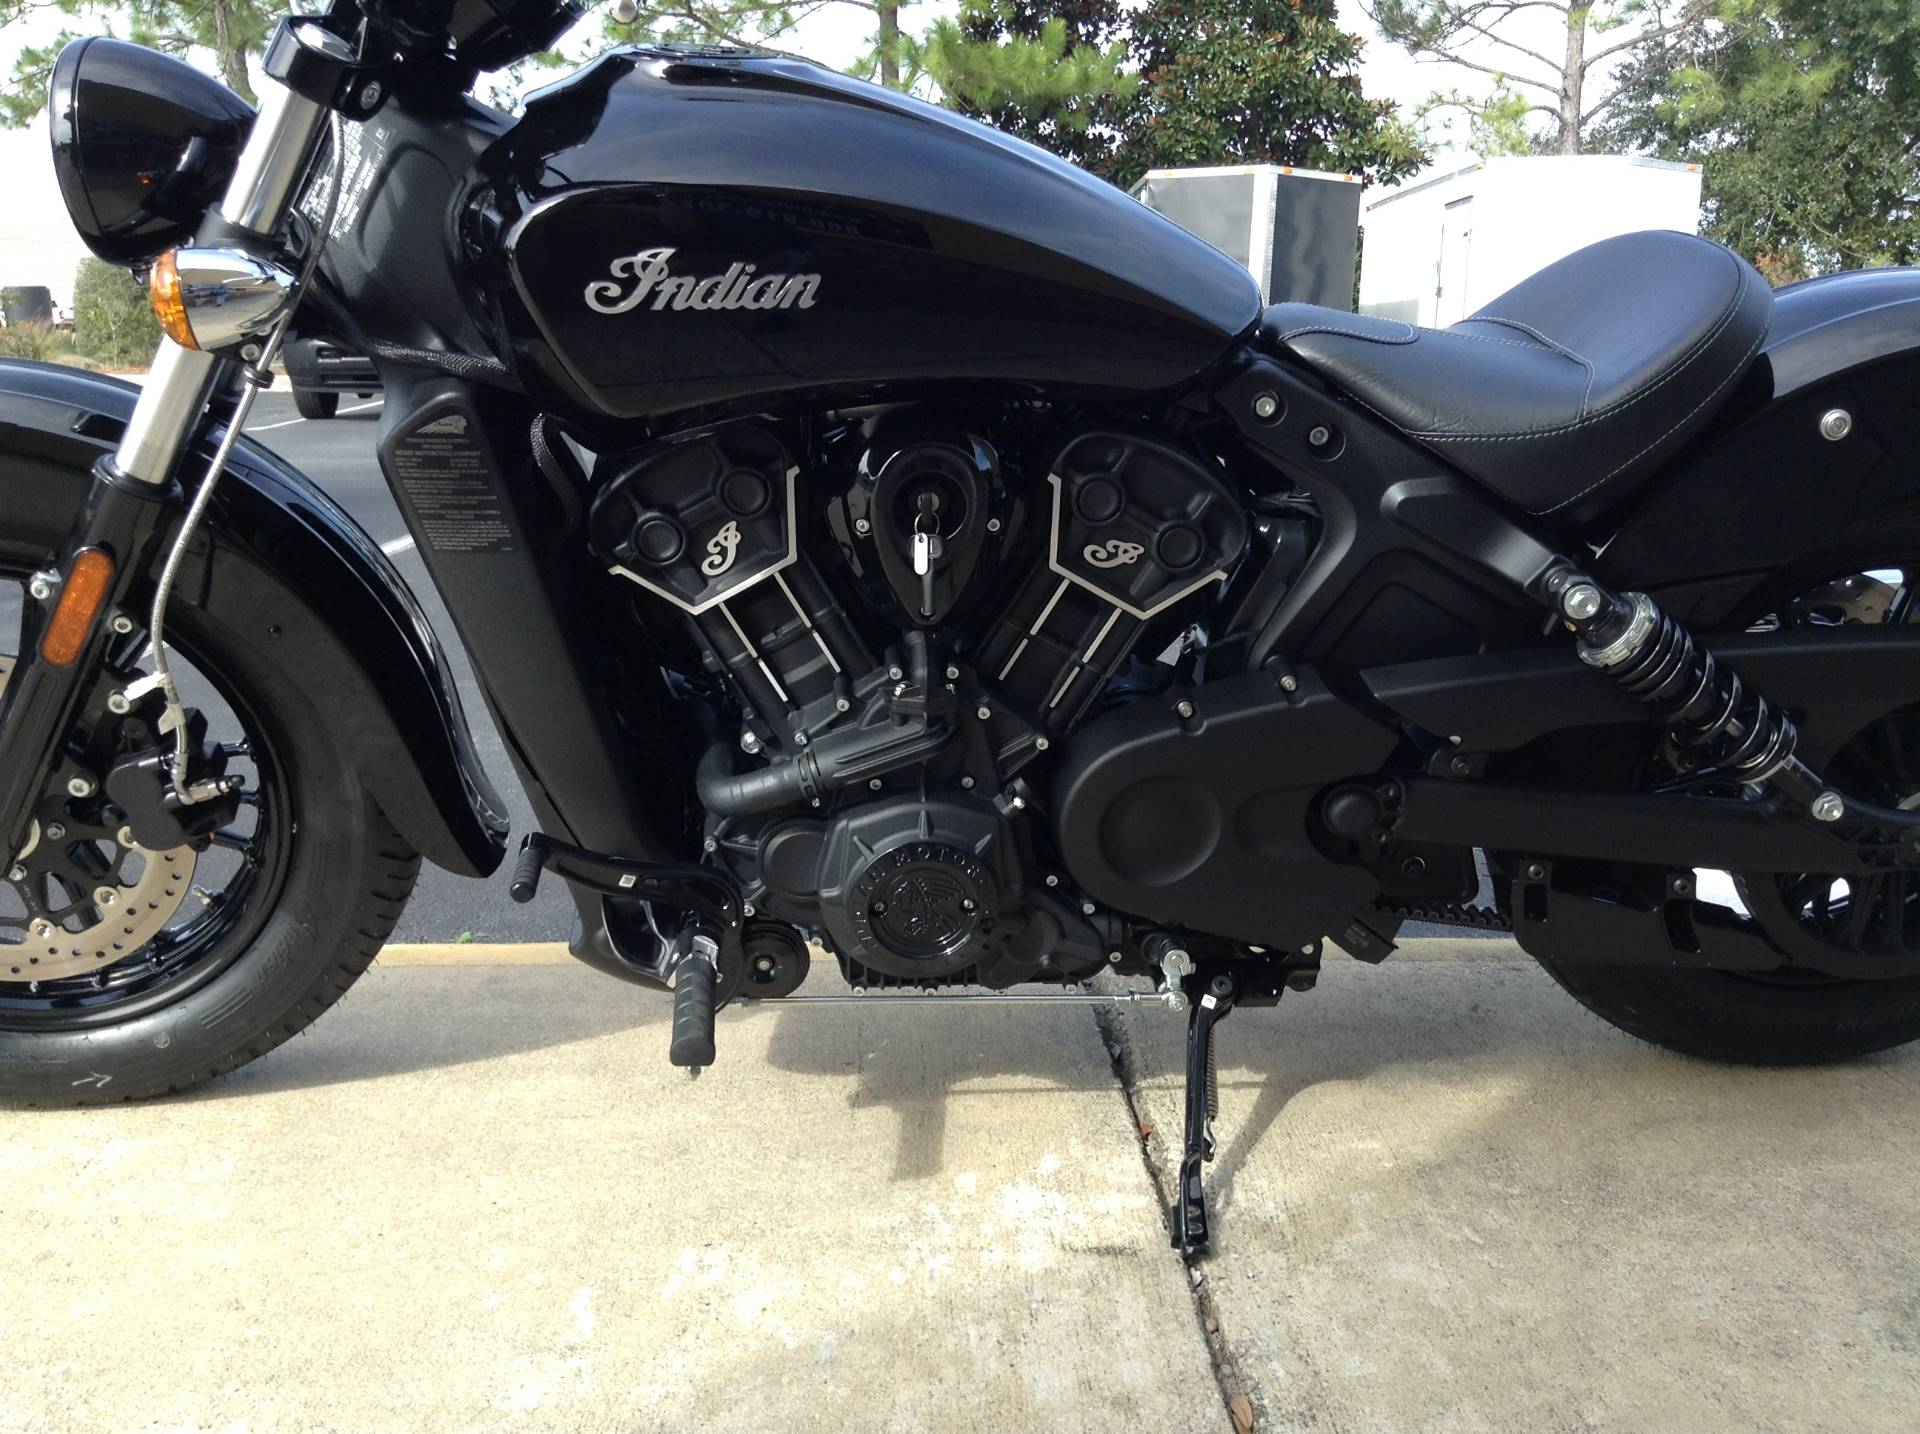 2020 Indian SCOUT 60 in Panama City Beach, Florida - Photo 8